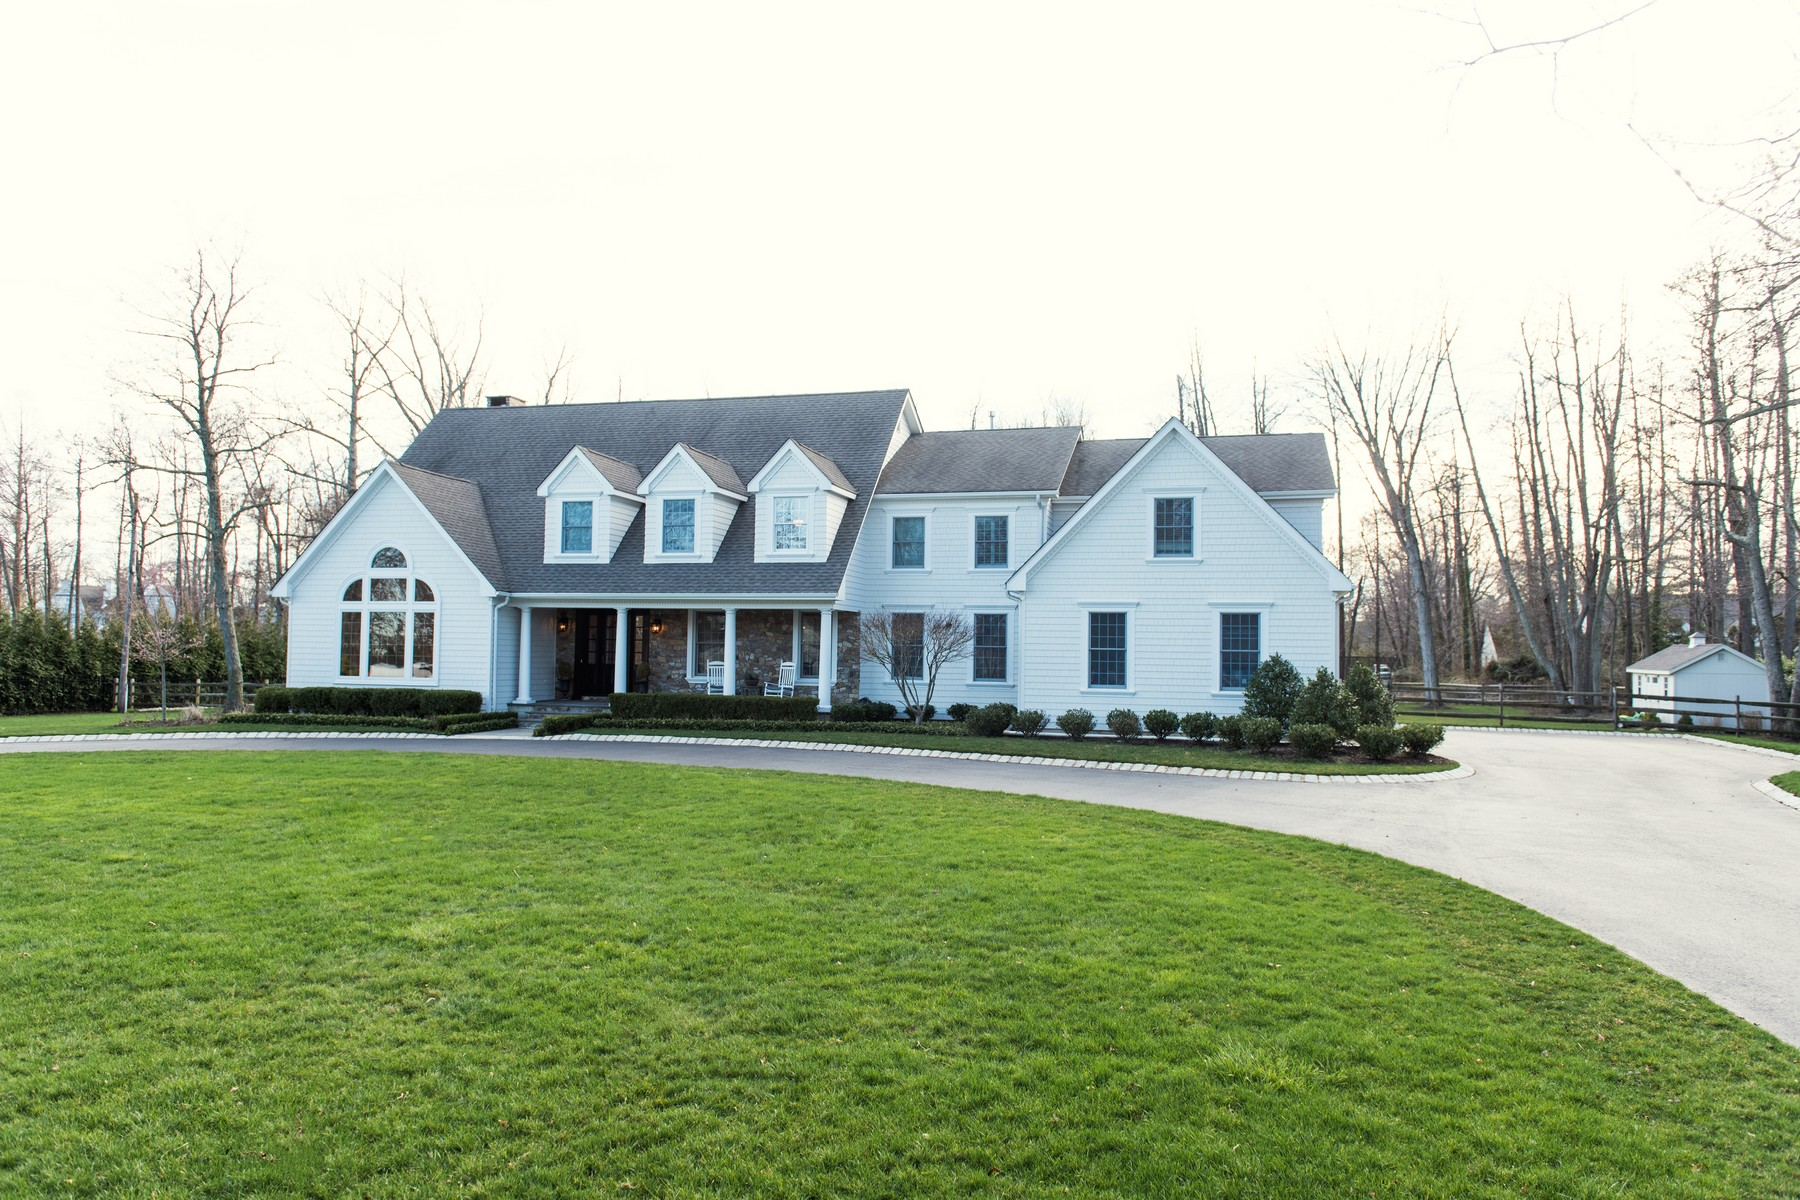 Single Family Home for Sale at Captivating Custom Home 10 Heathcliff Rd Rumson, New Jersey 07760 United States